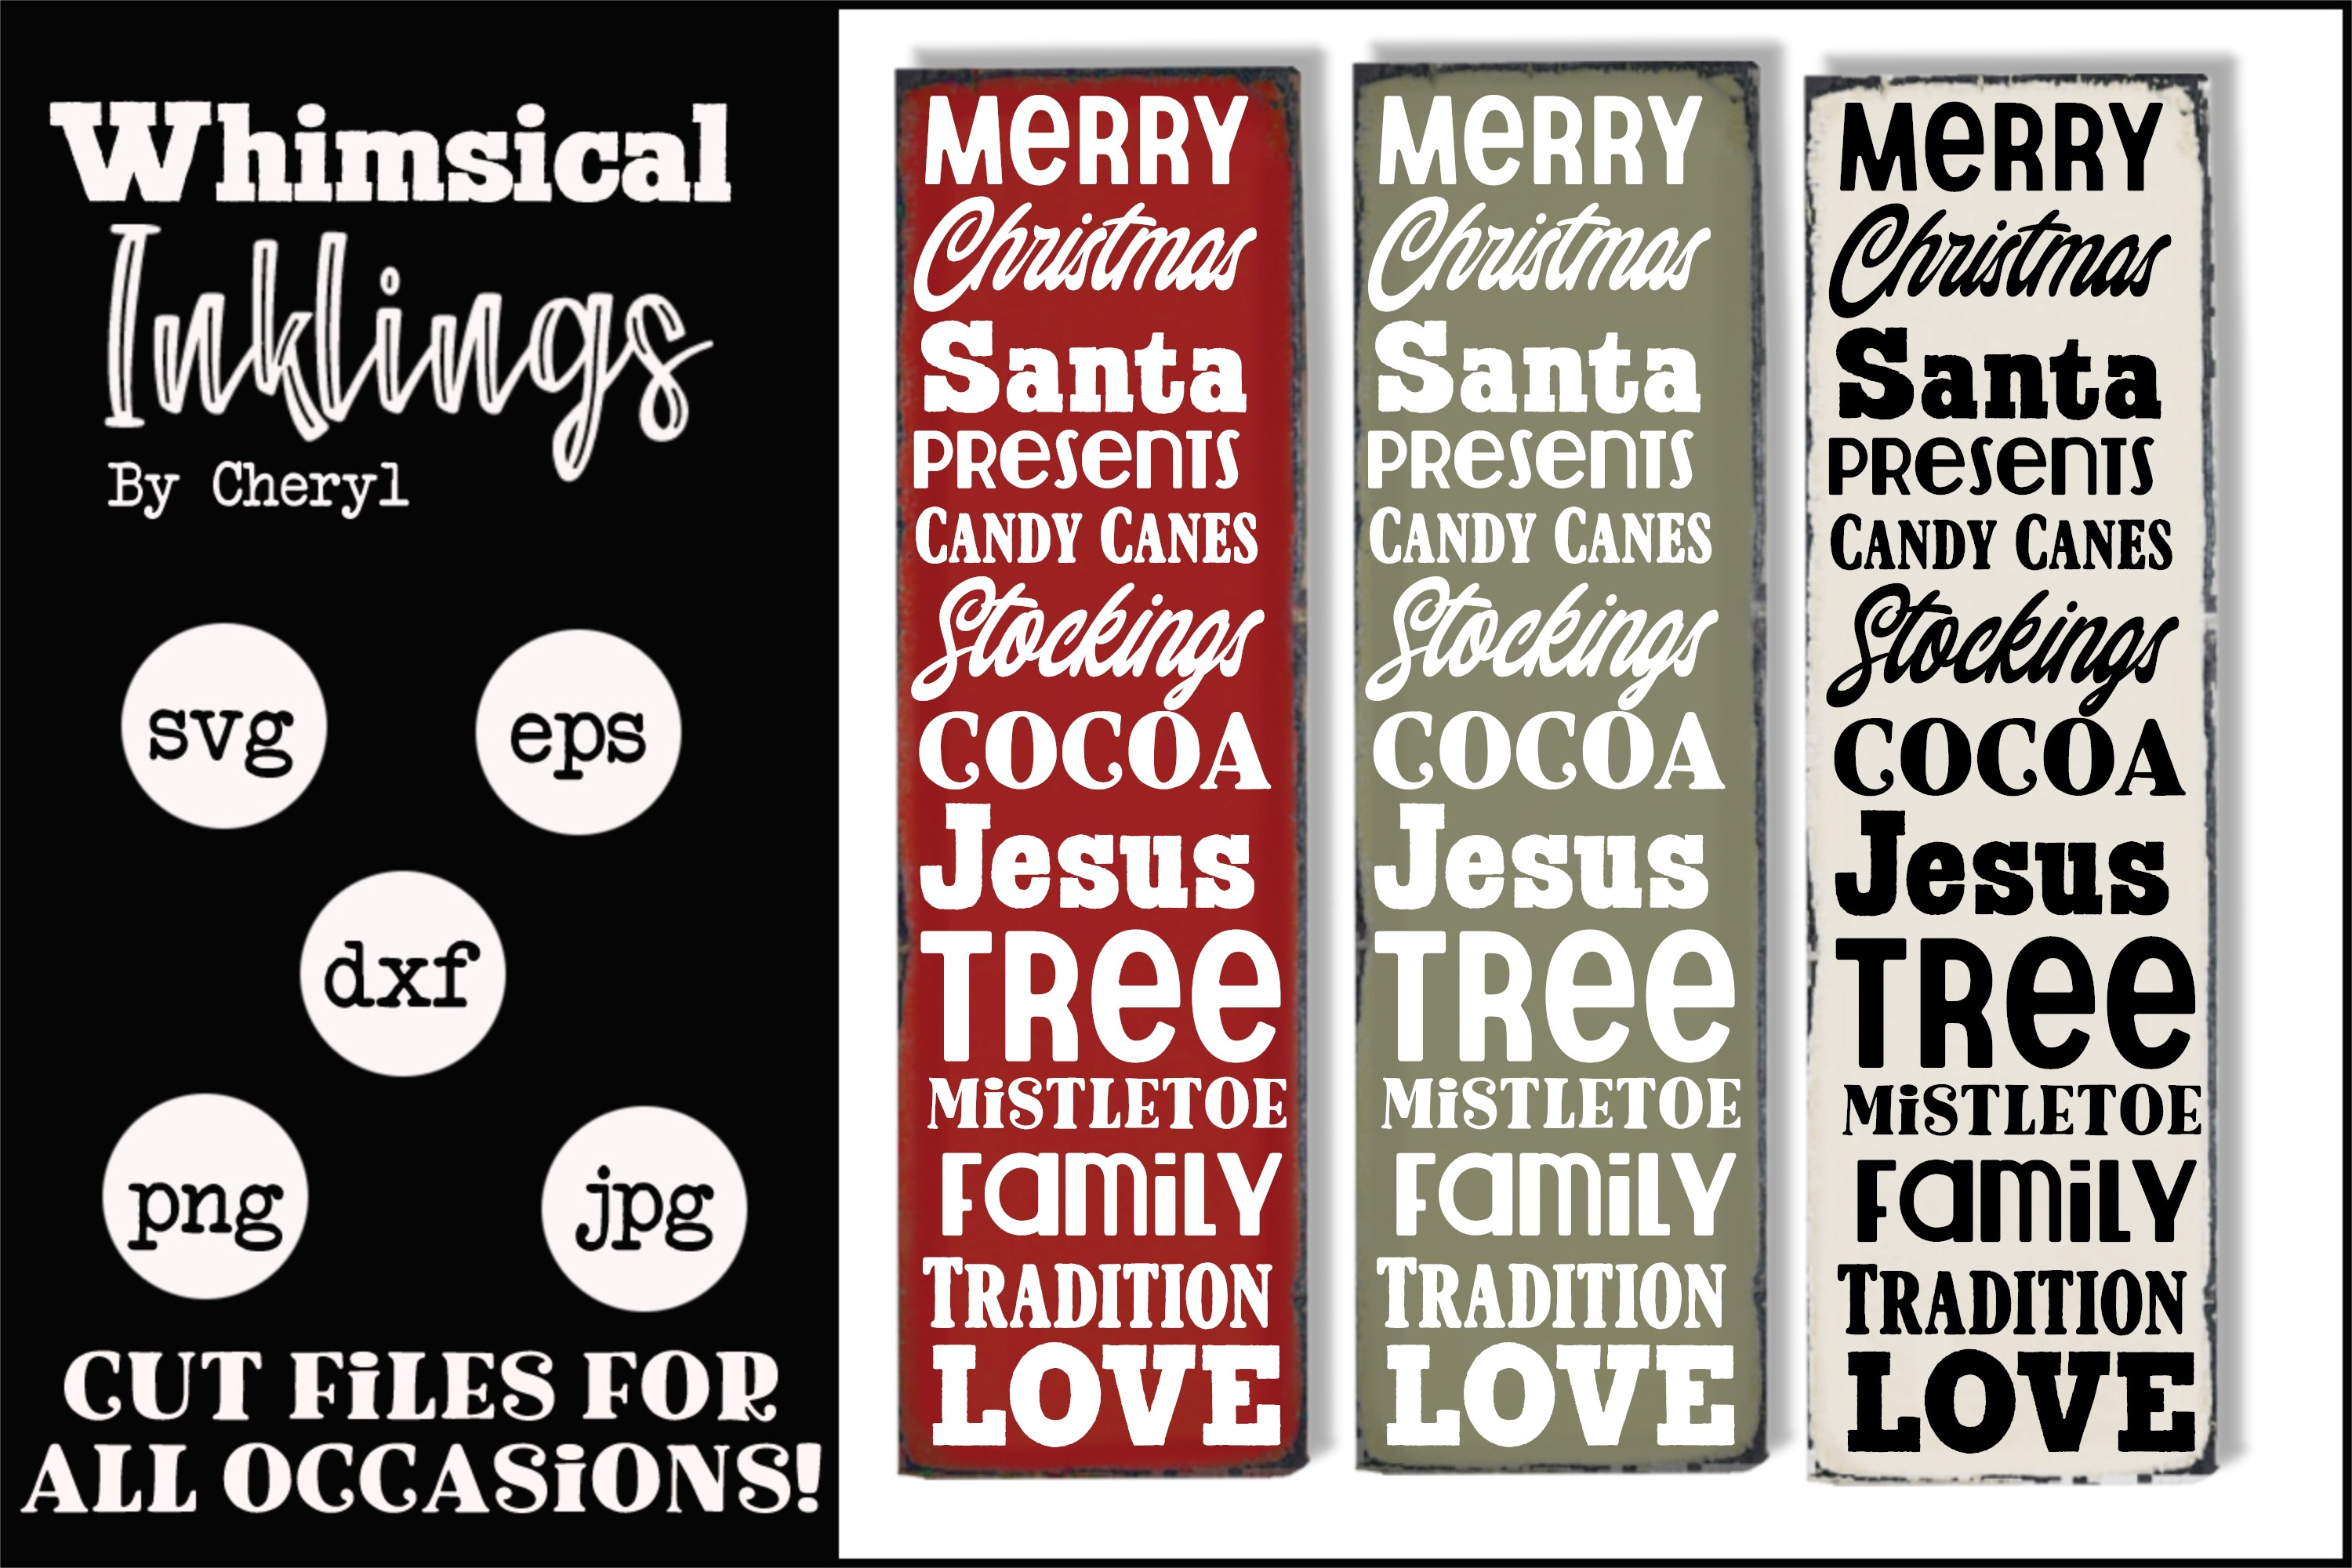 Merry Christmas Vertical 2 SVG example image 1